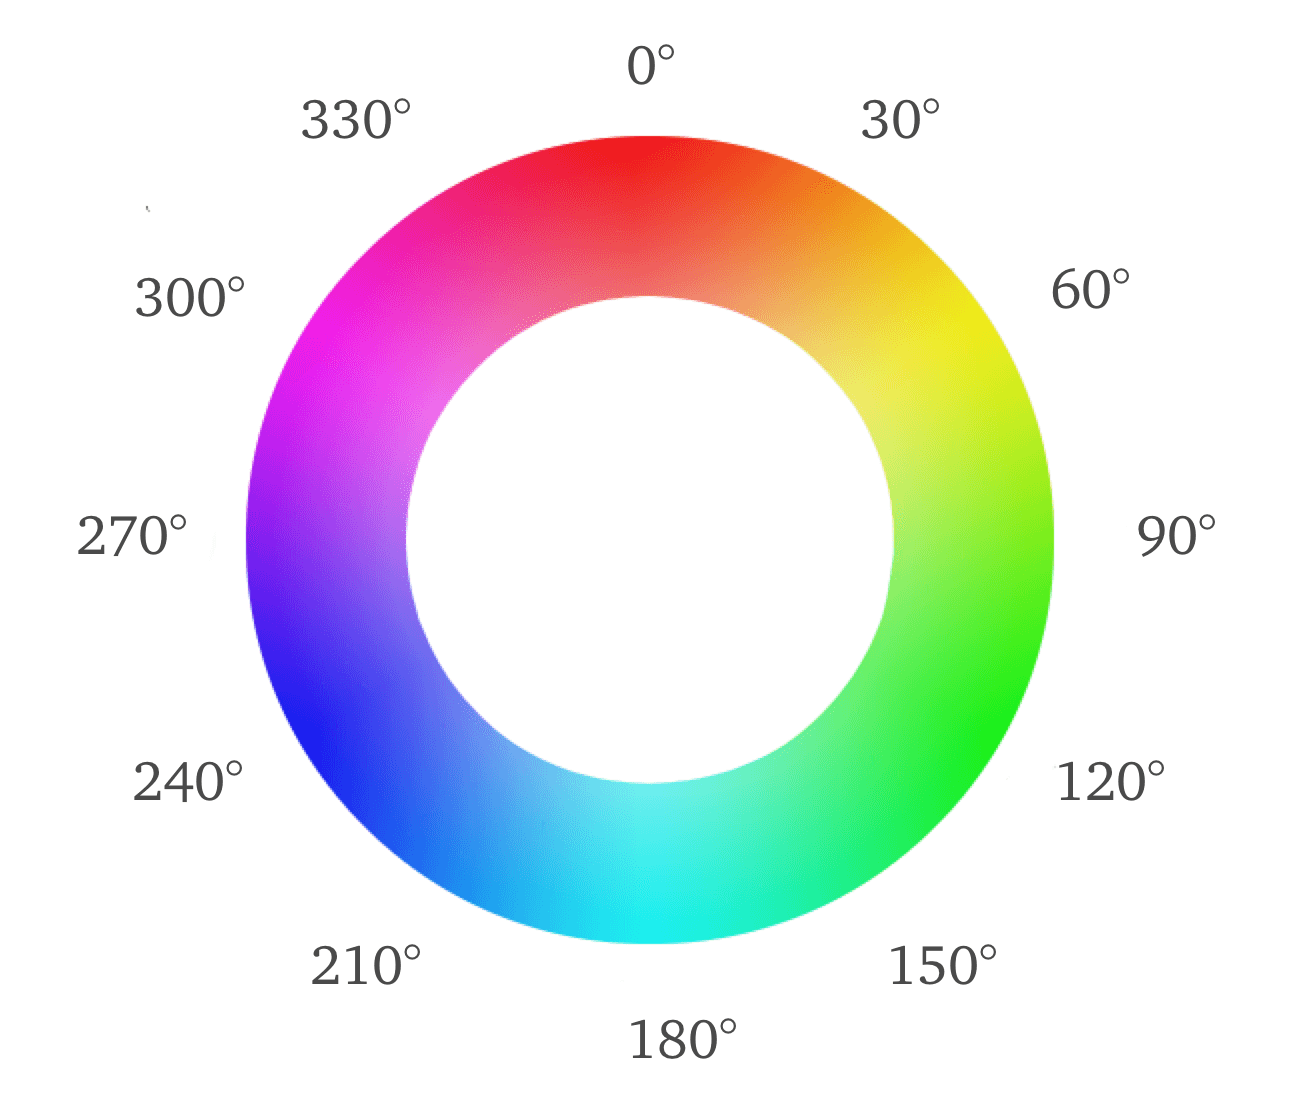 Hue angles on a color wheel